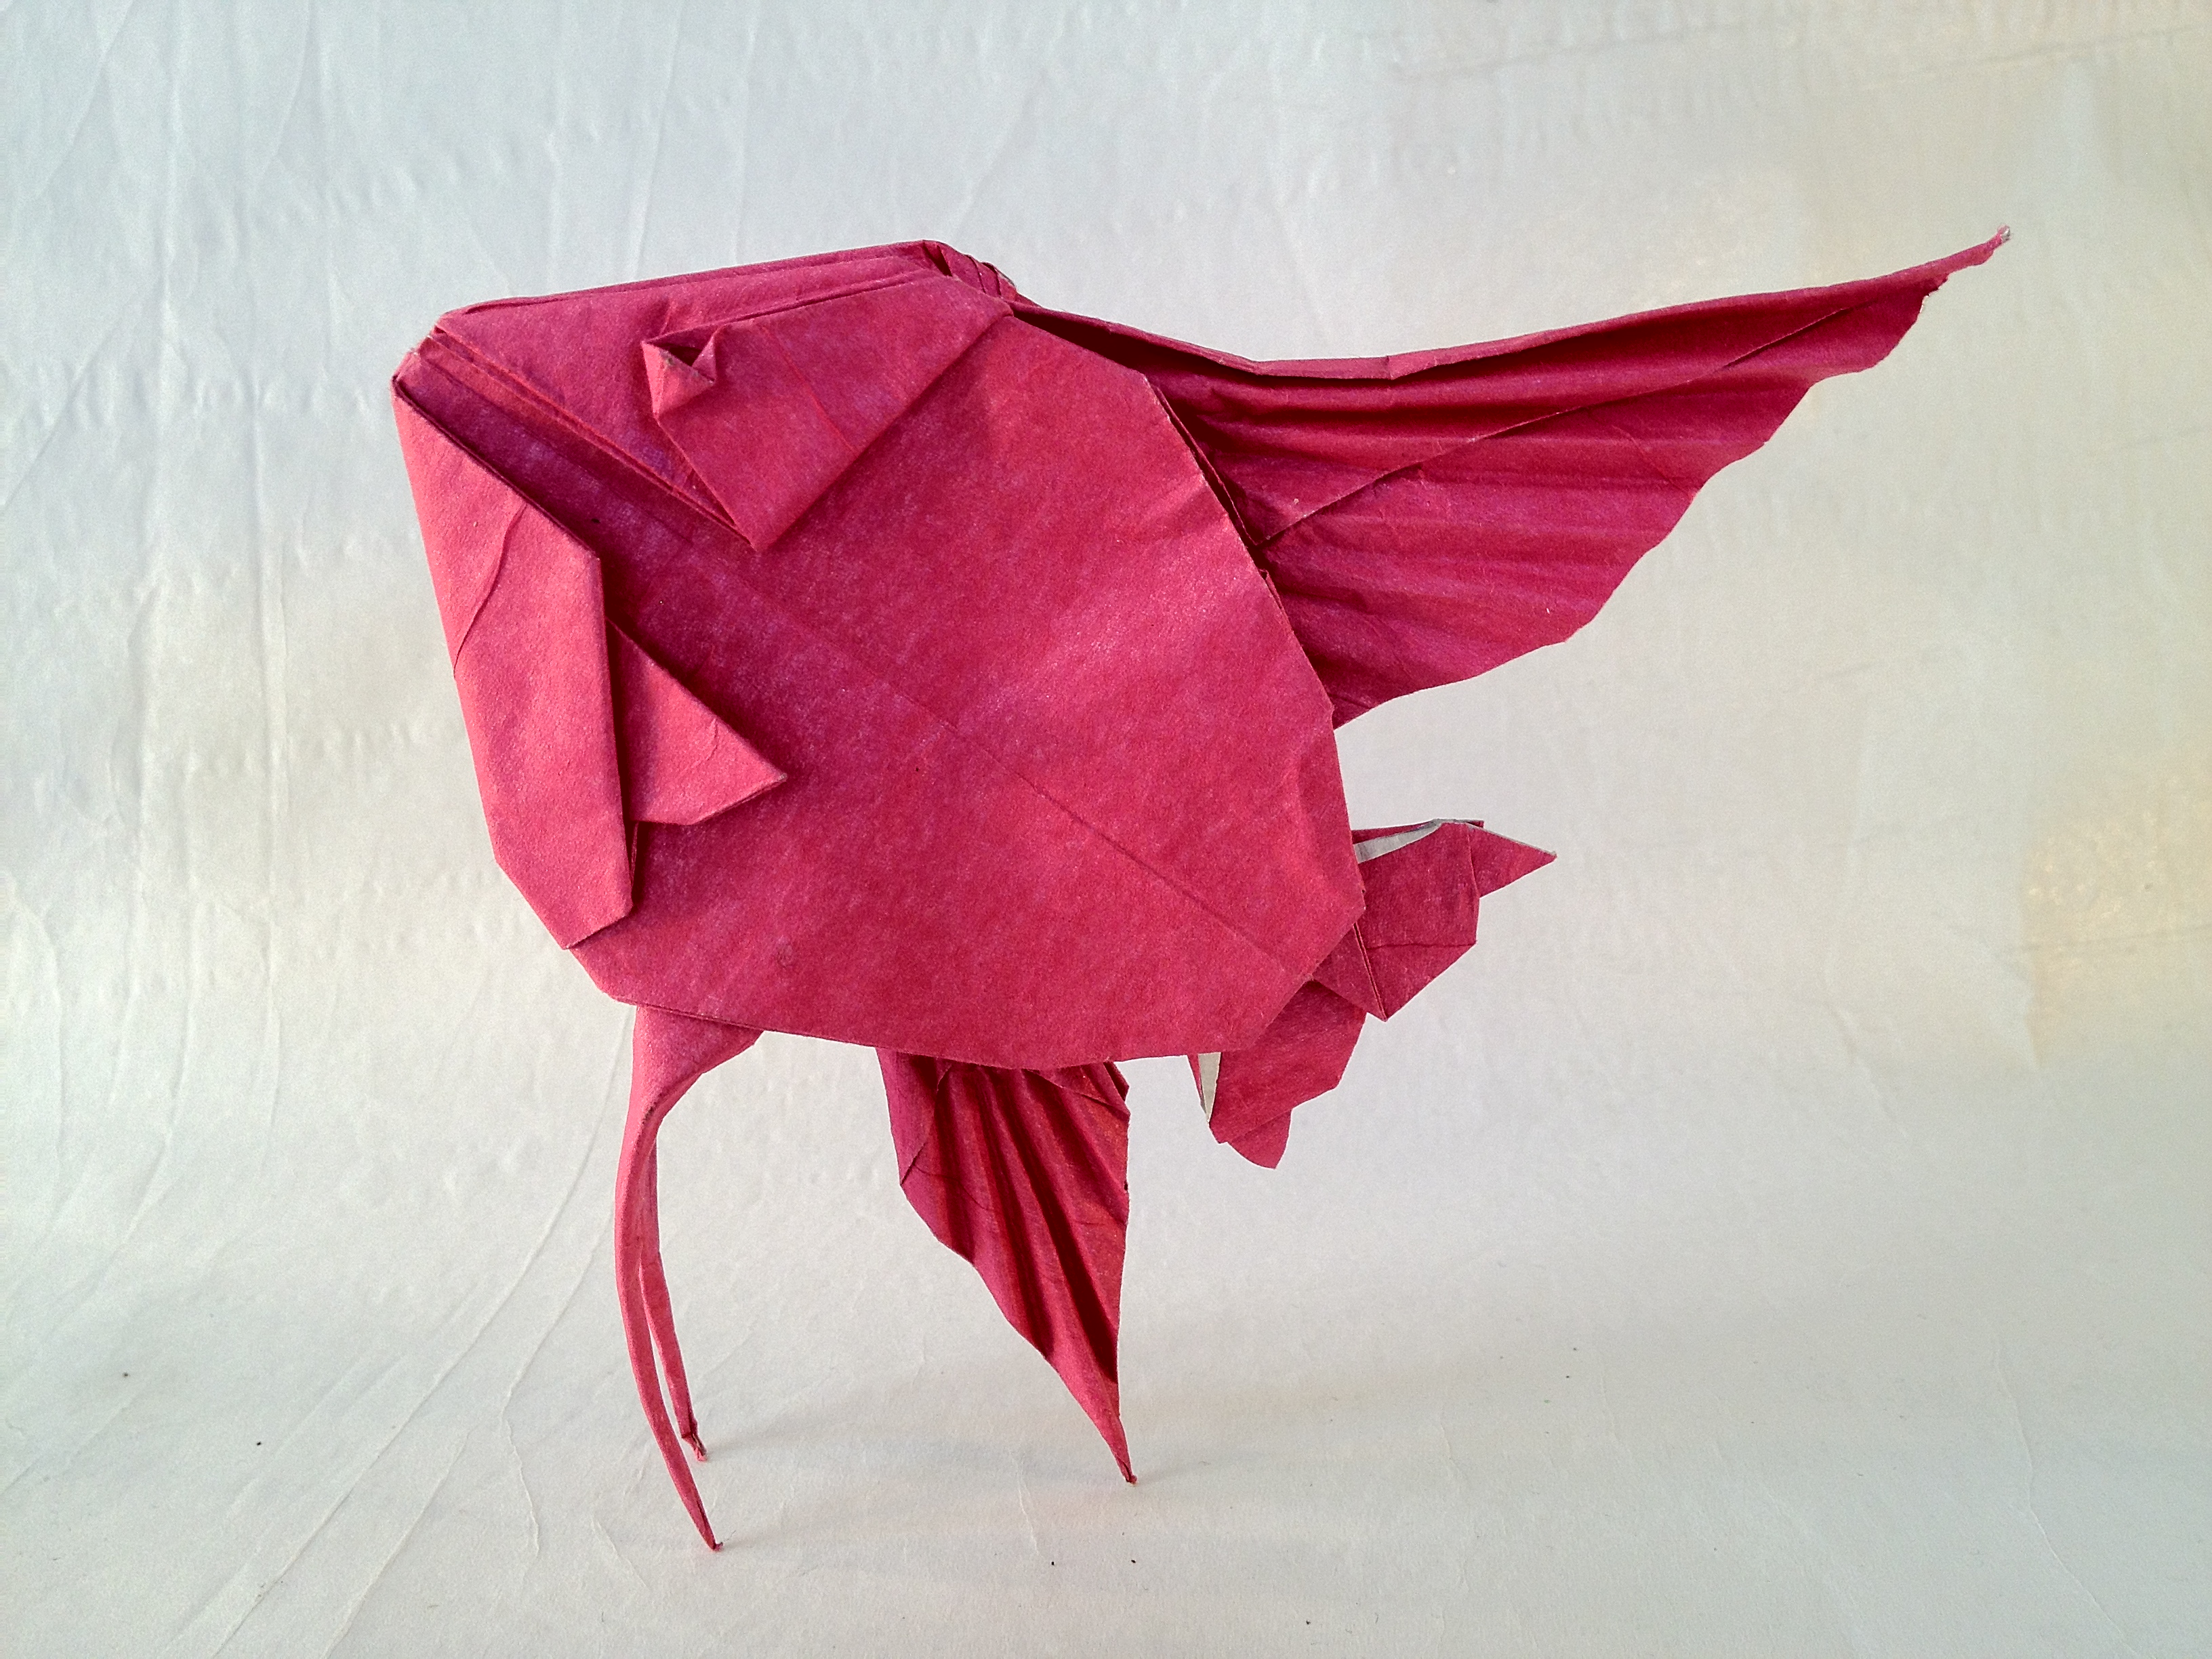 66 Origami Angel Fish Designs And How Tous Images On Diagram Friesen Folding